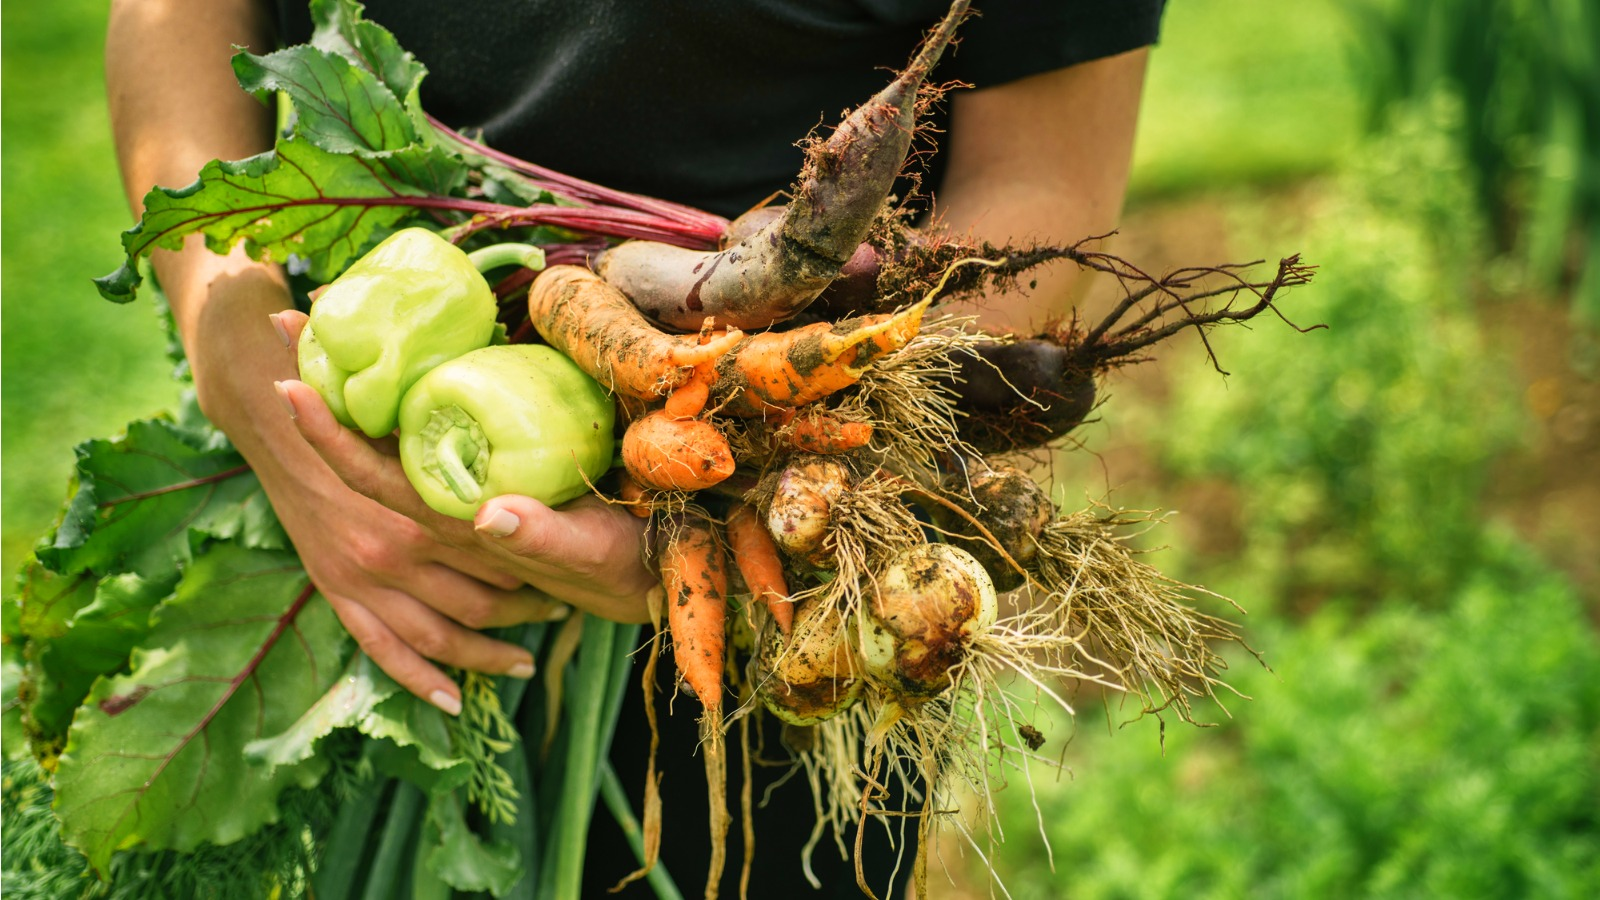 Can you really save money growing vegetables at home?